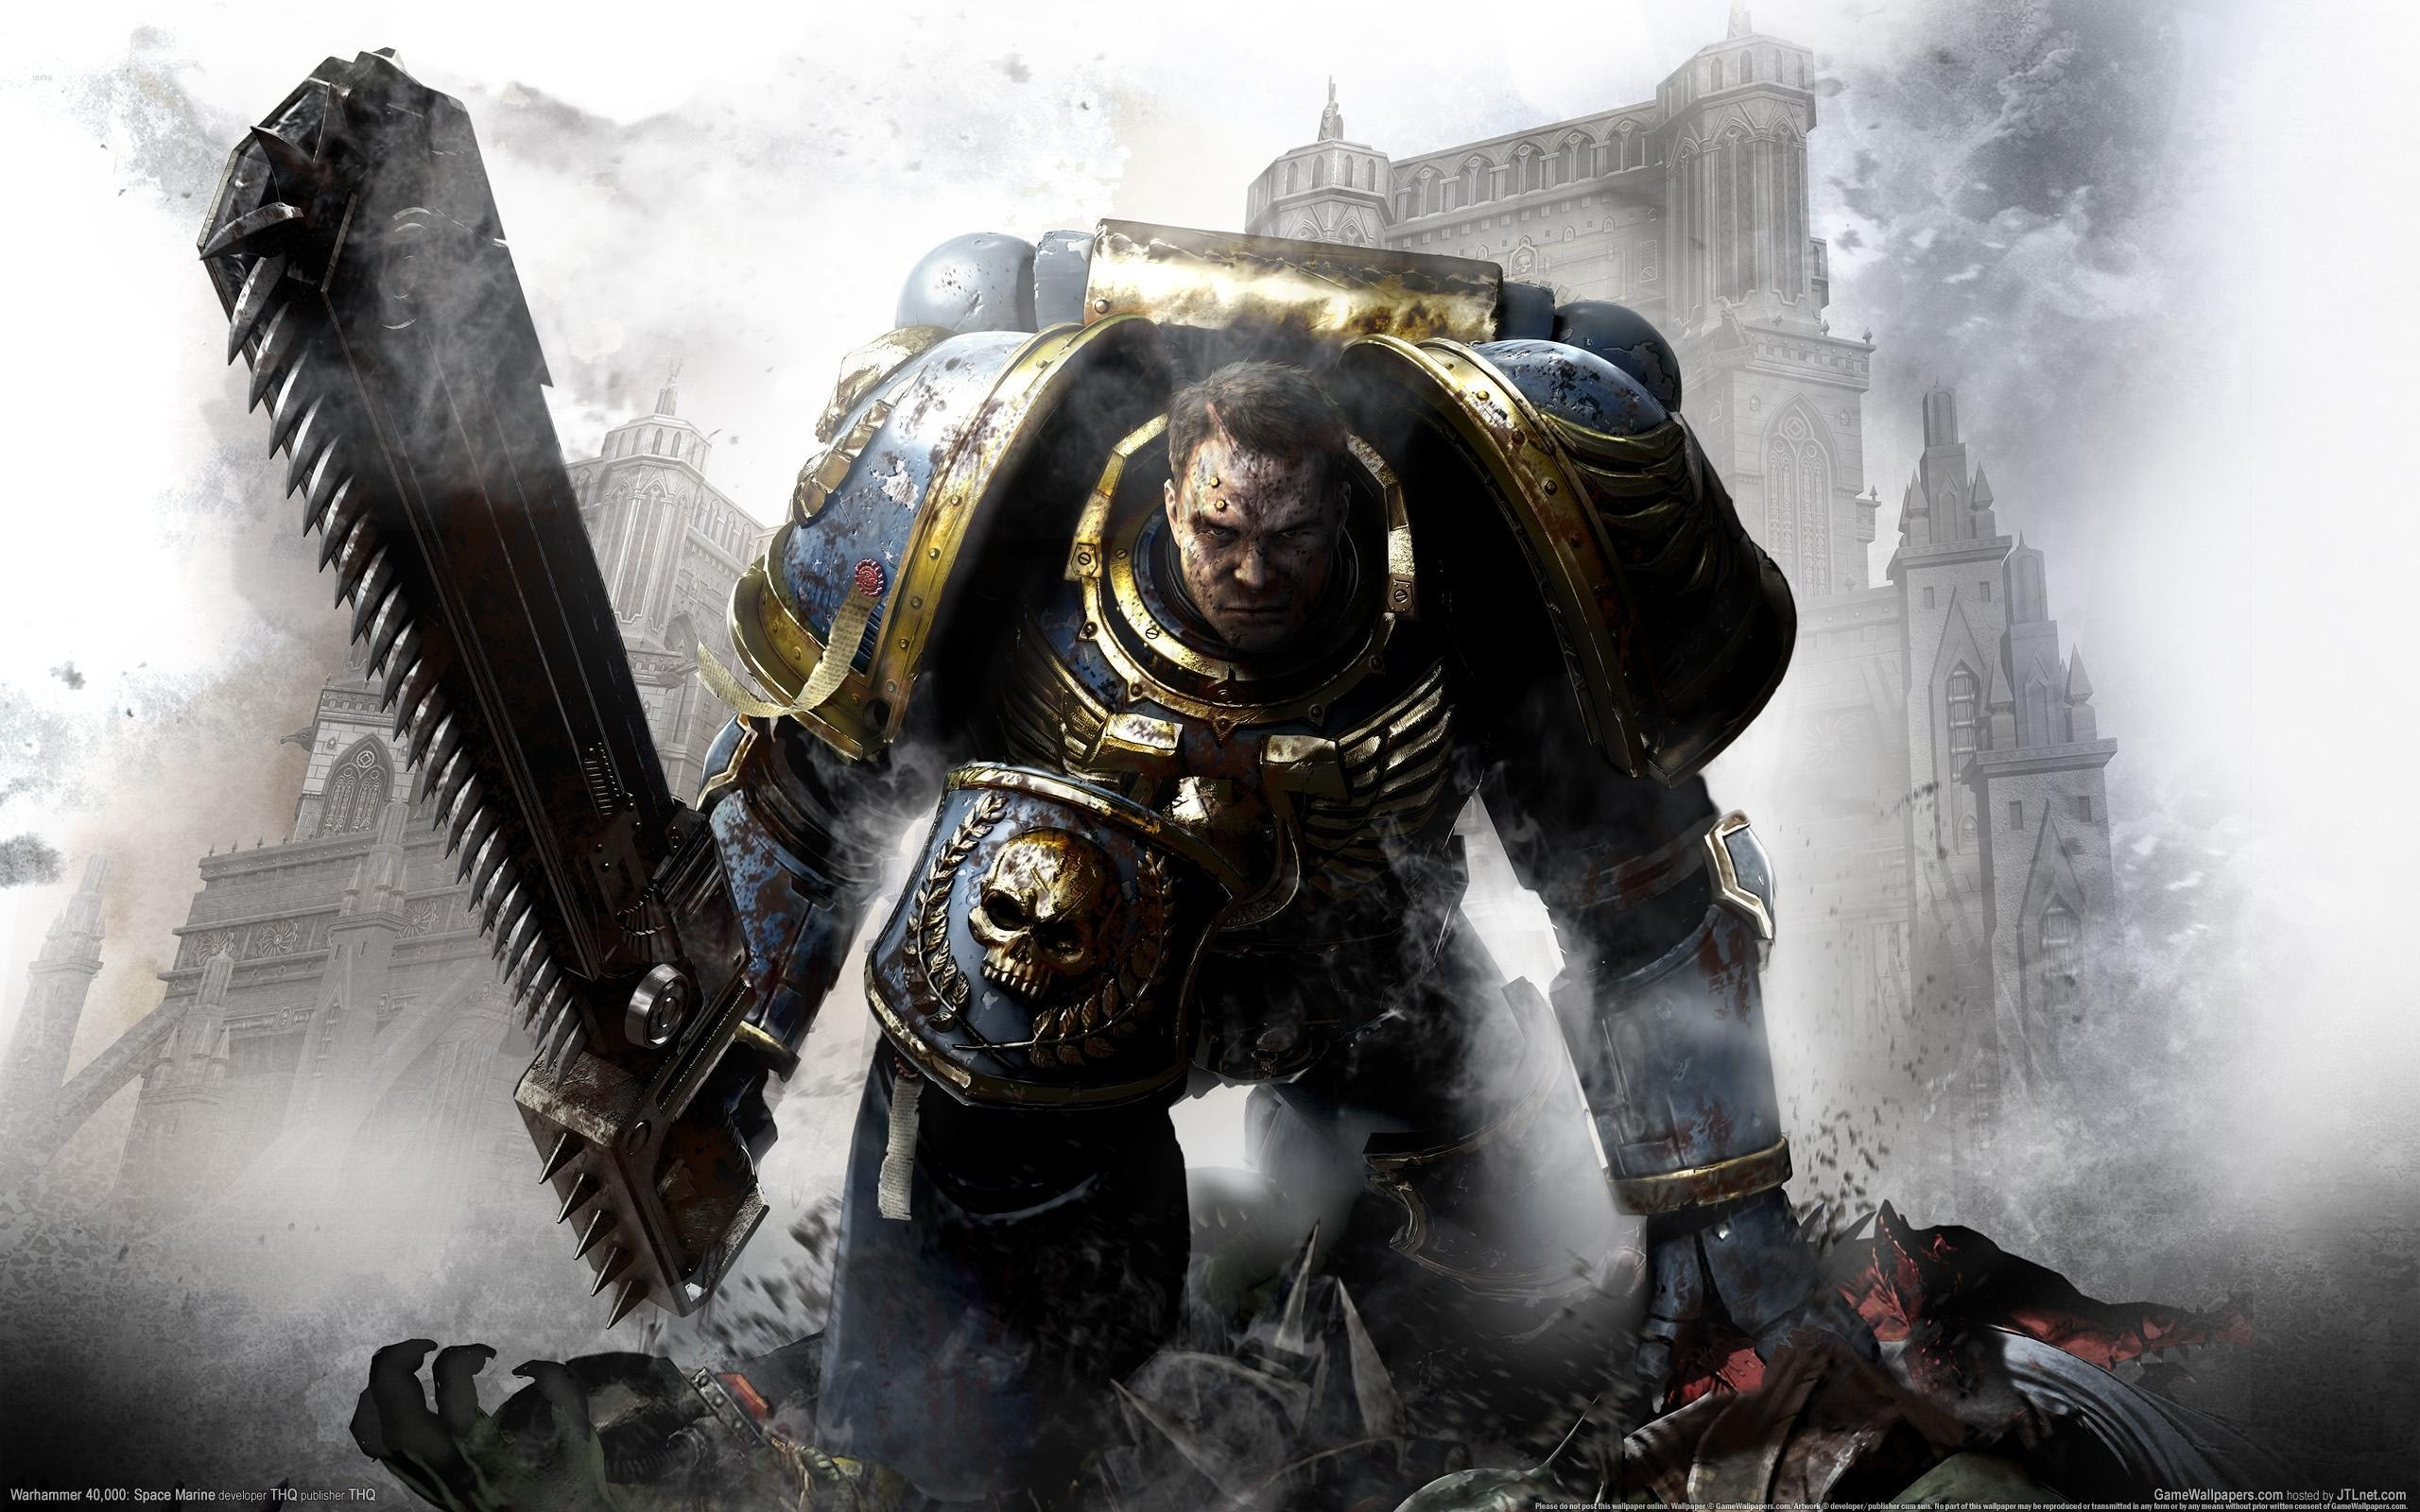 Wallpaper Warhammer 40000 Space Marine 2560x1600 Hd Picture Image